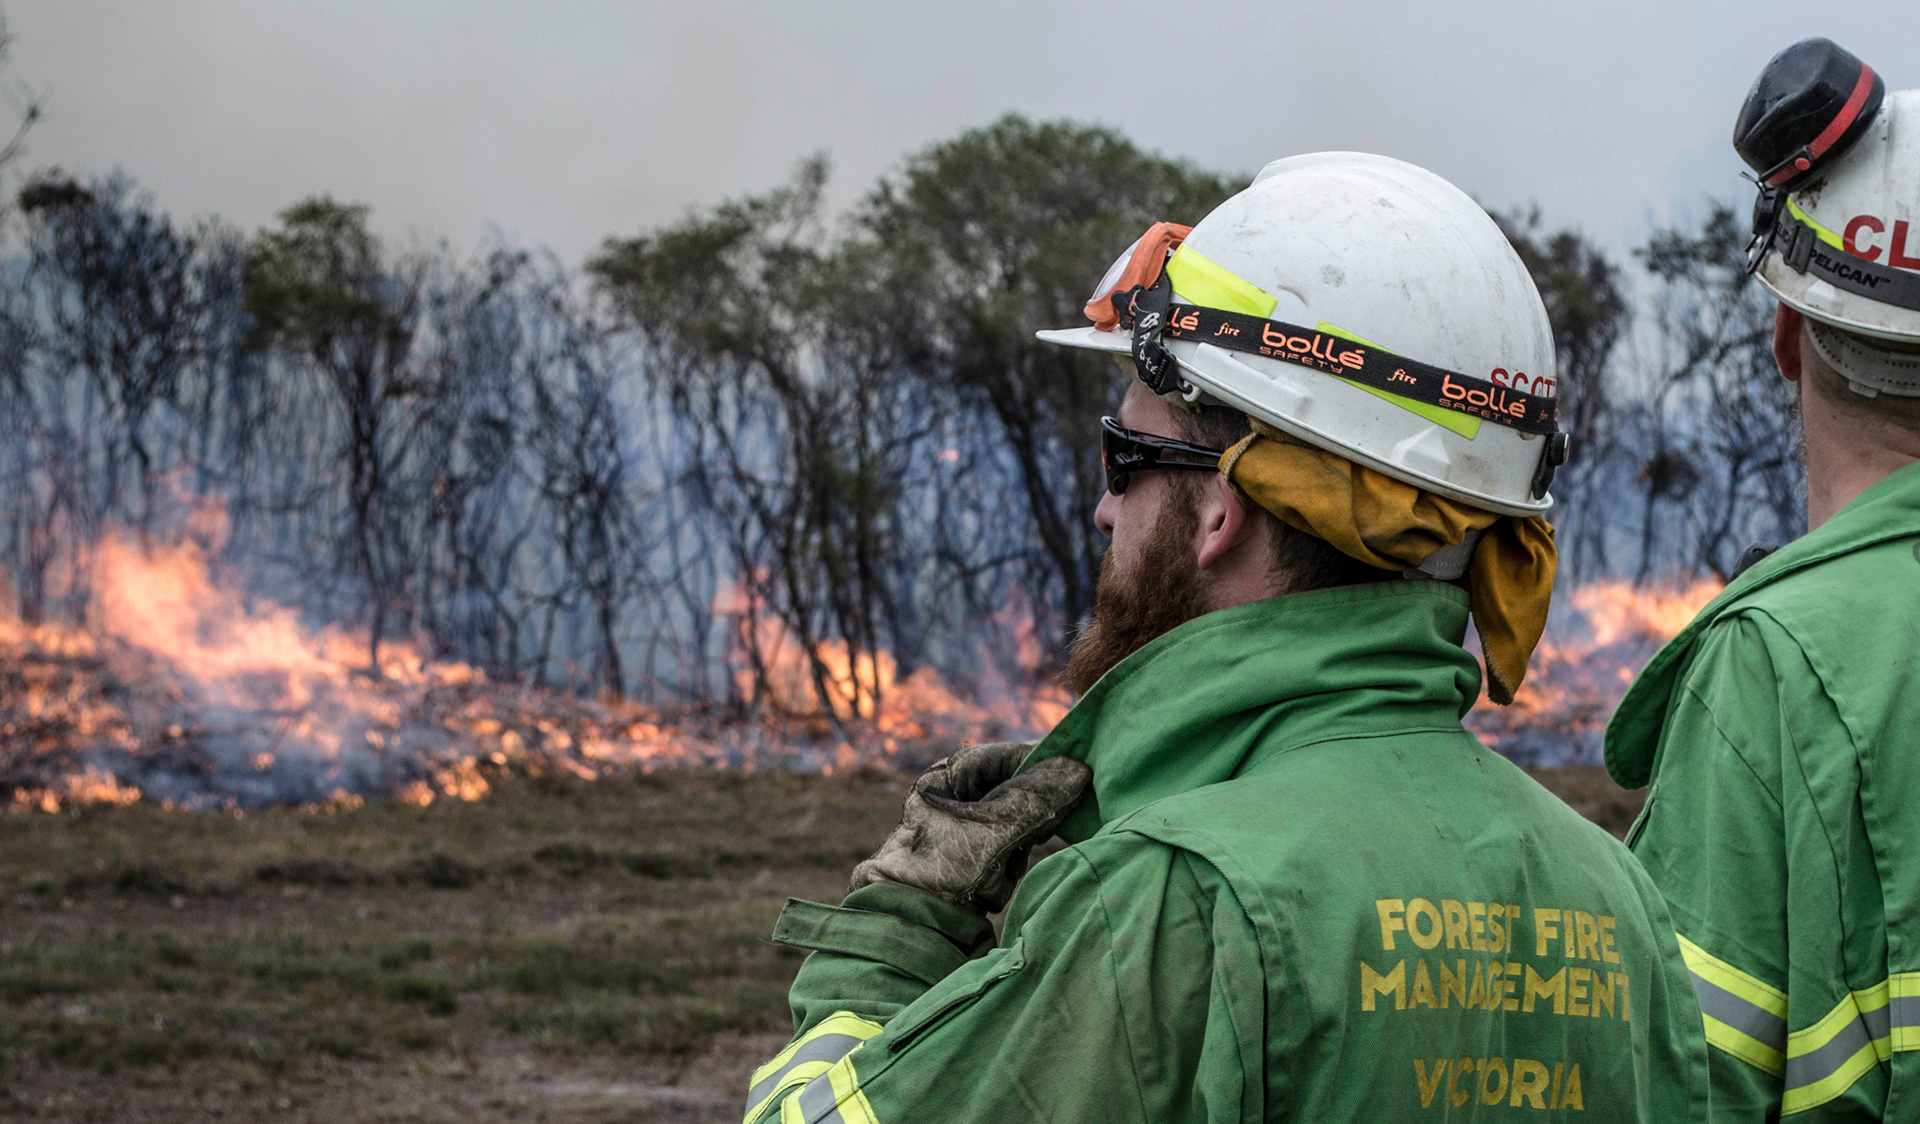 Forest Fire Management team